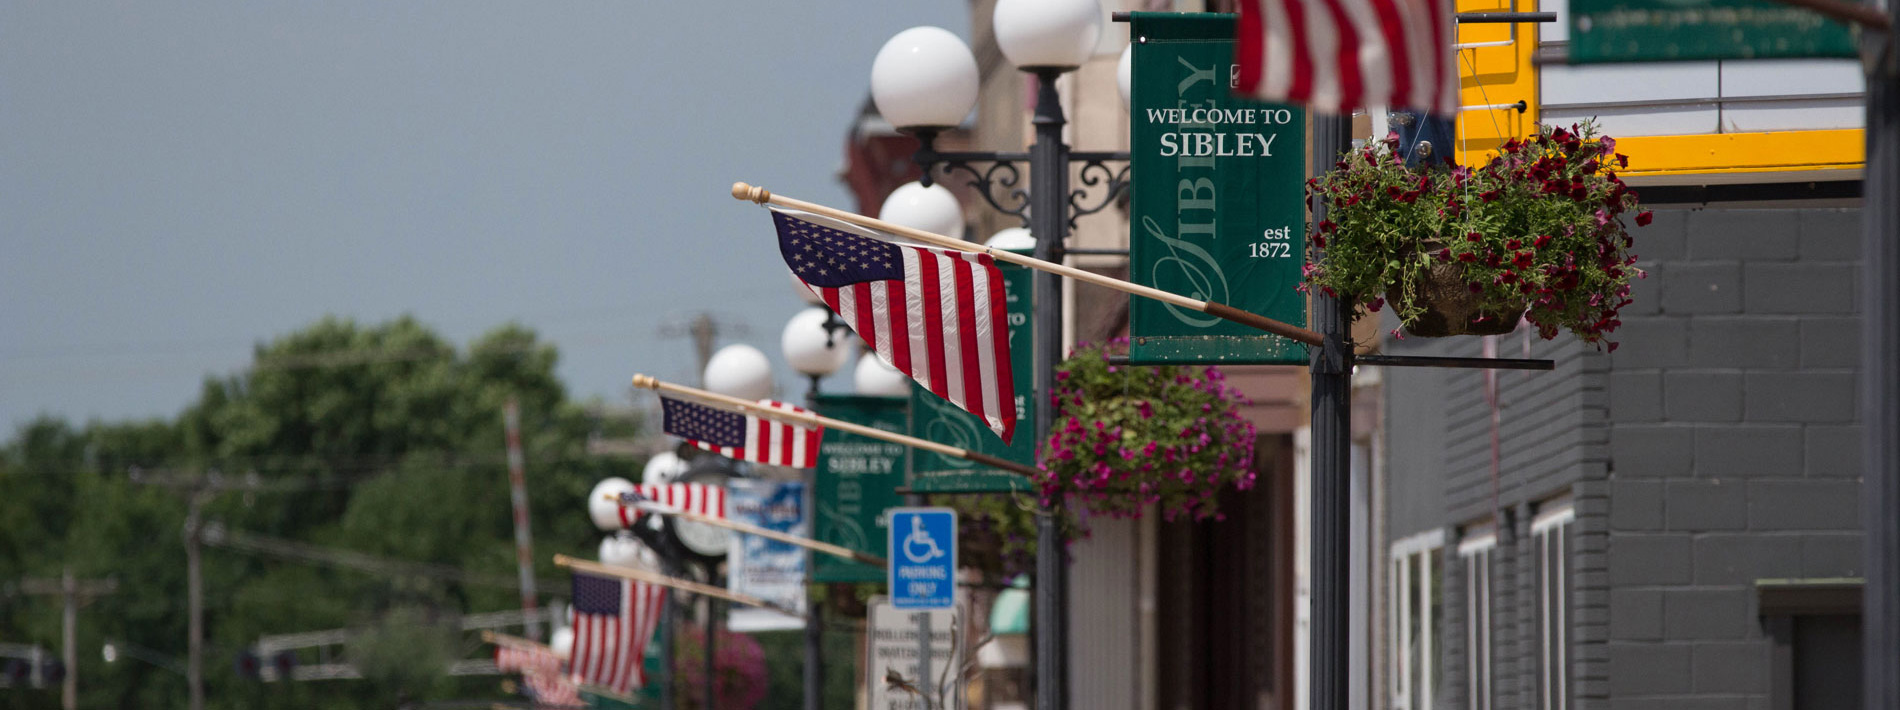 Downtown Sibley